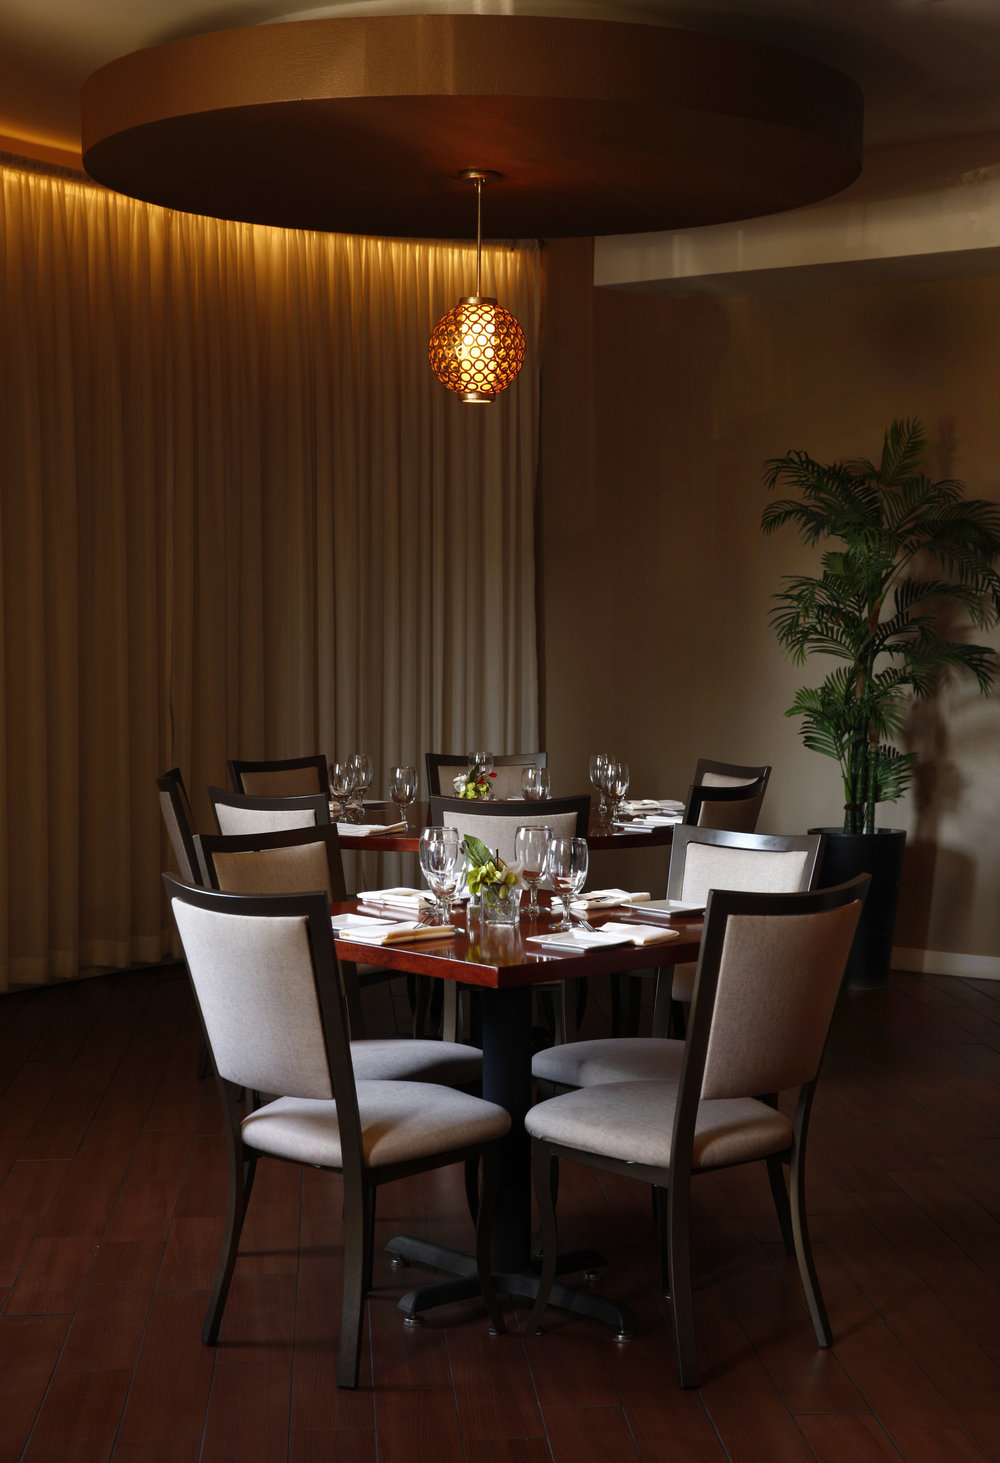 Macaroni's updated dining room went from 9 tables to 120 seats.